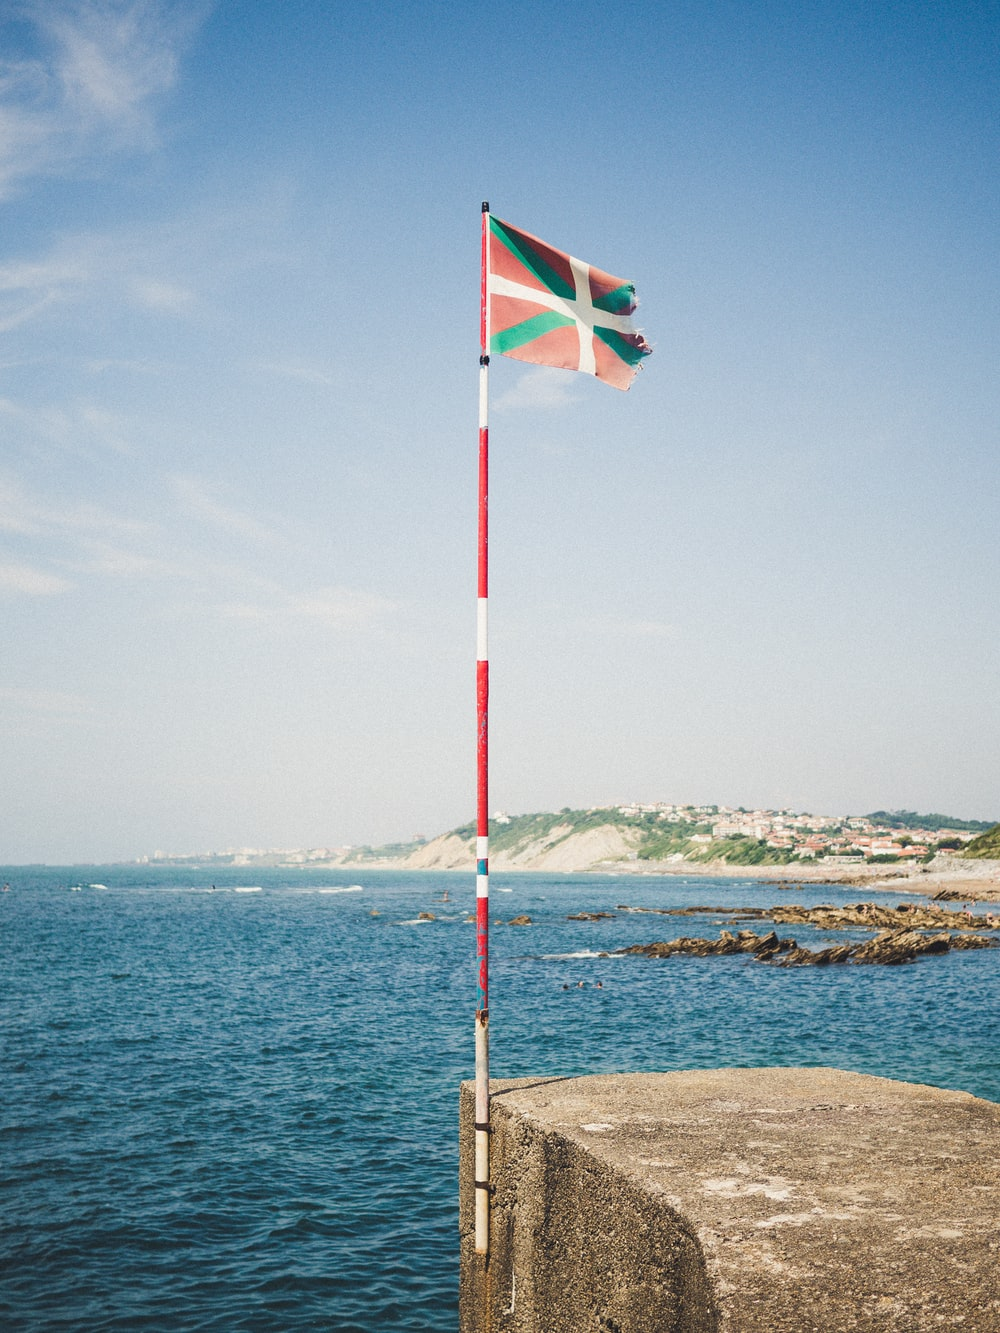 waving flag surrunded by body of water